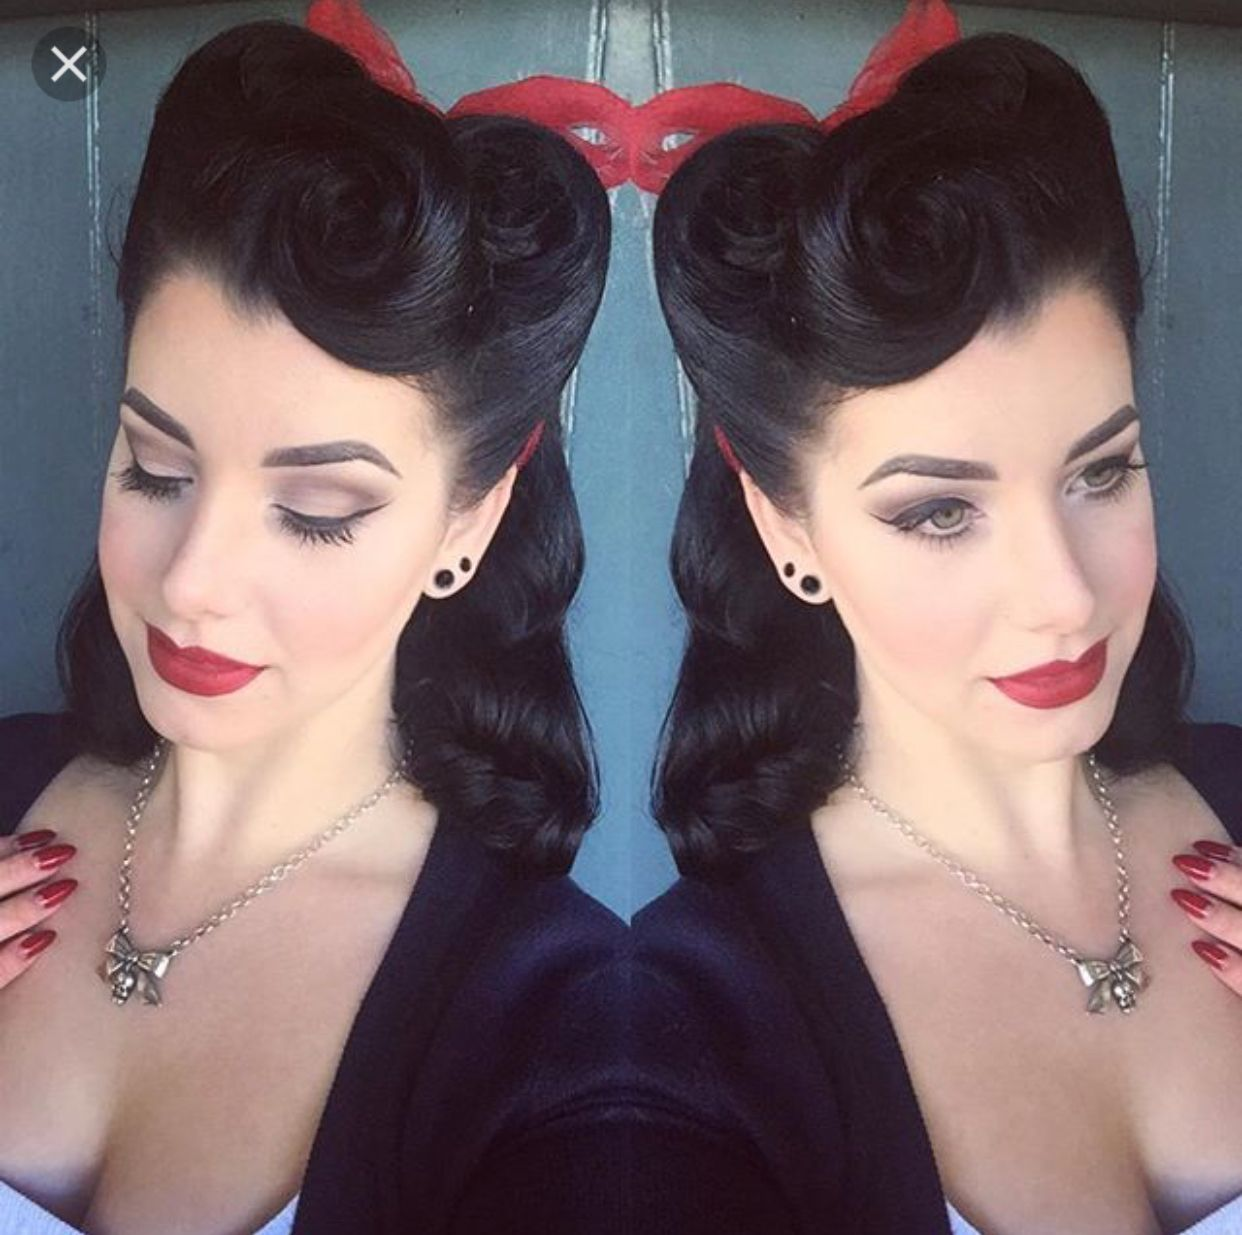 Victory Rolls Long Hair Retro Hairstyles Vintage Hairstyles Hair Styles